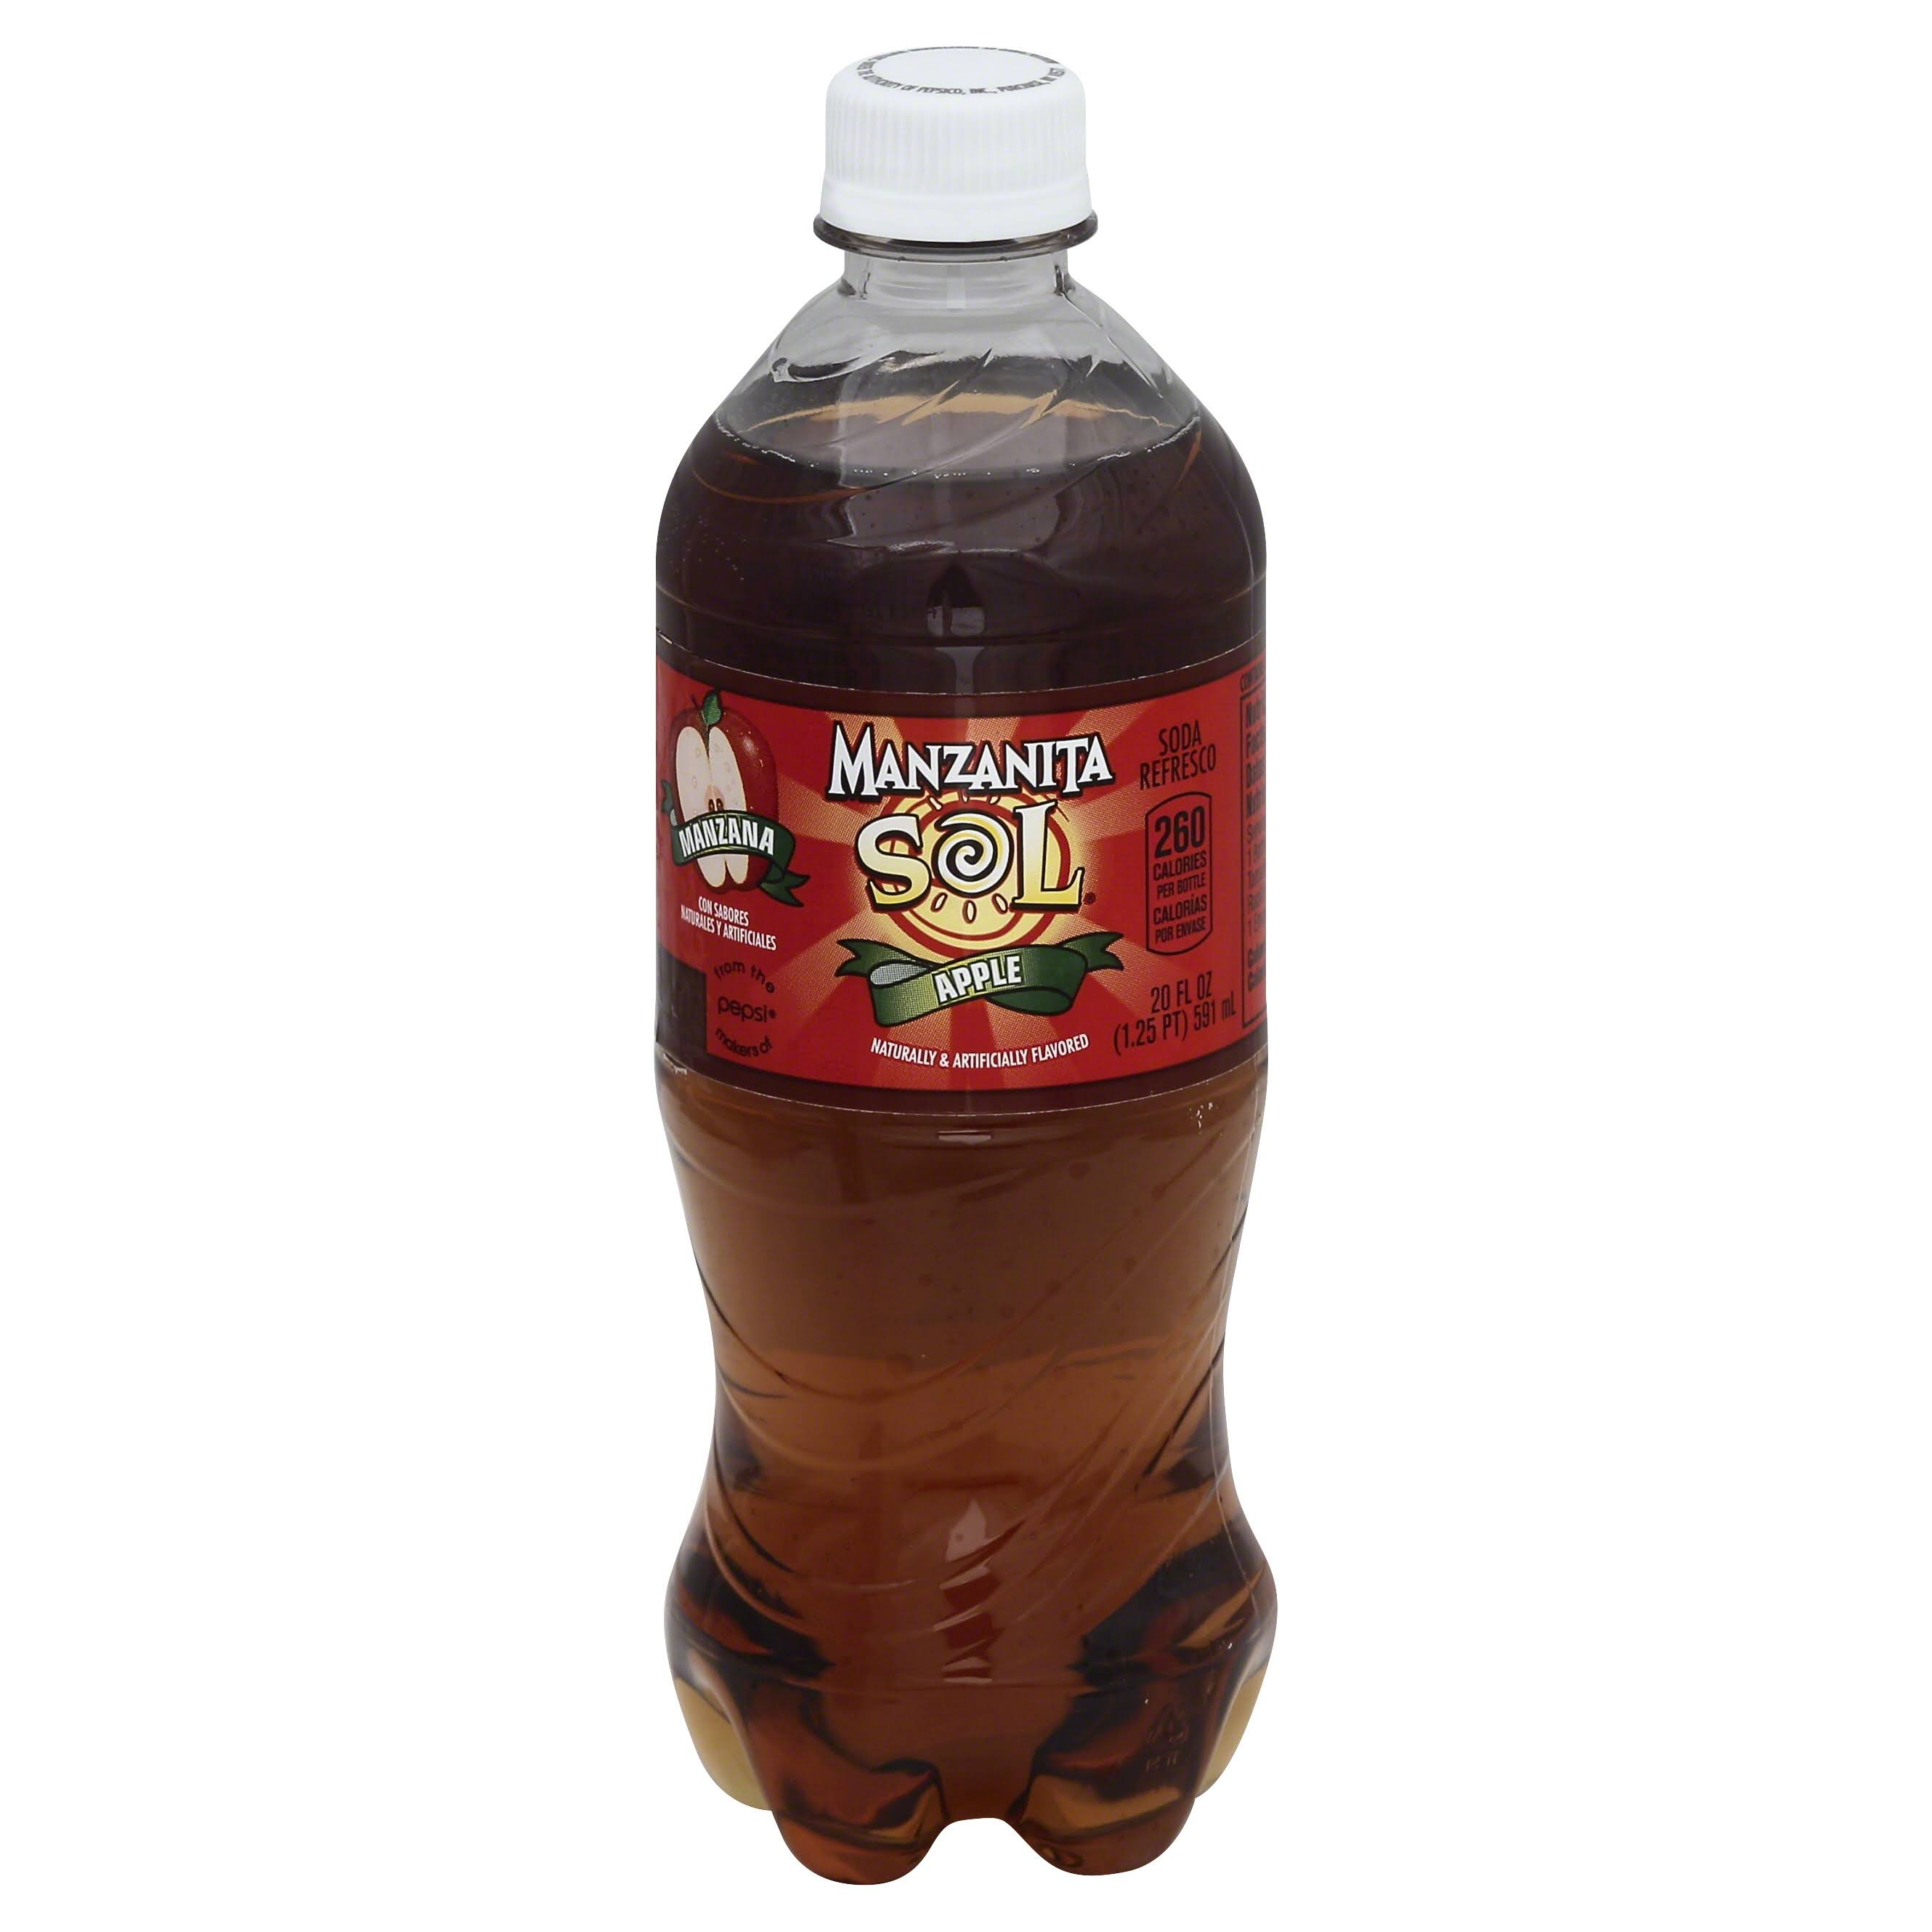 Manzanita Sol Soda - Apple, 20oz